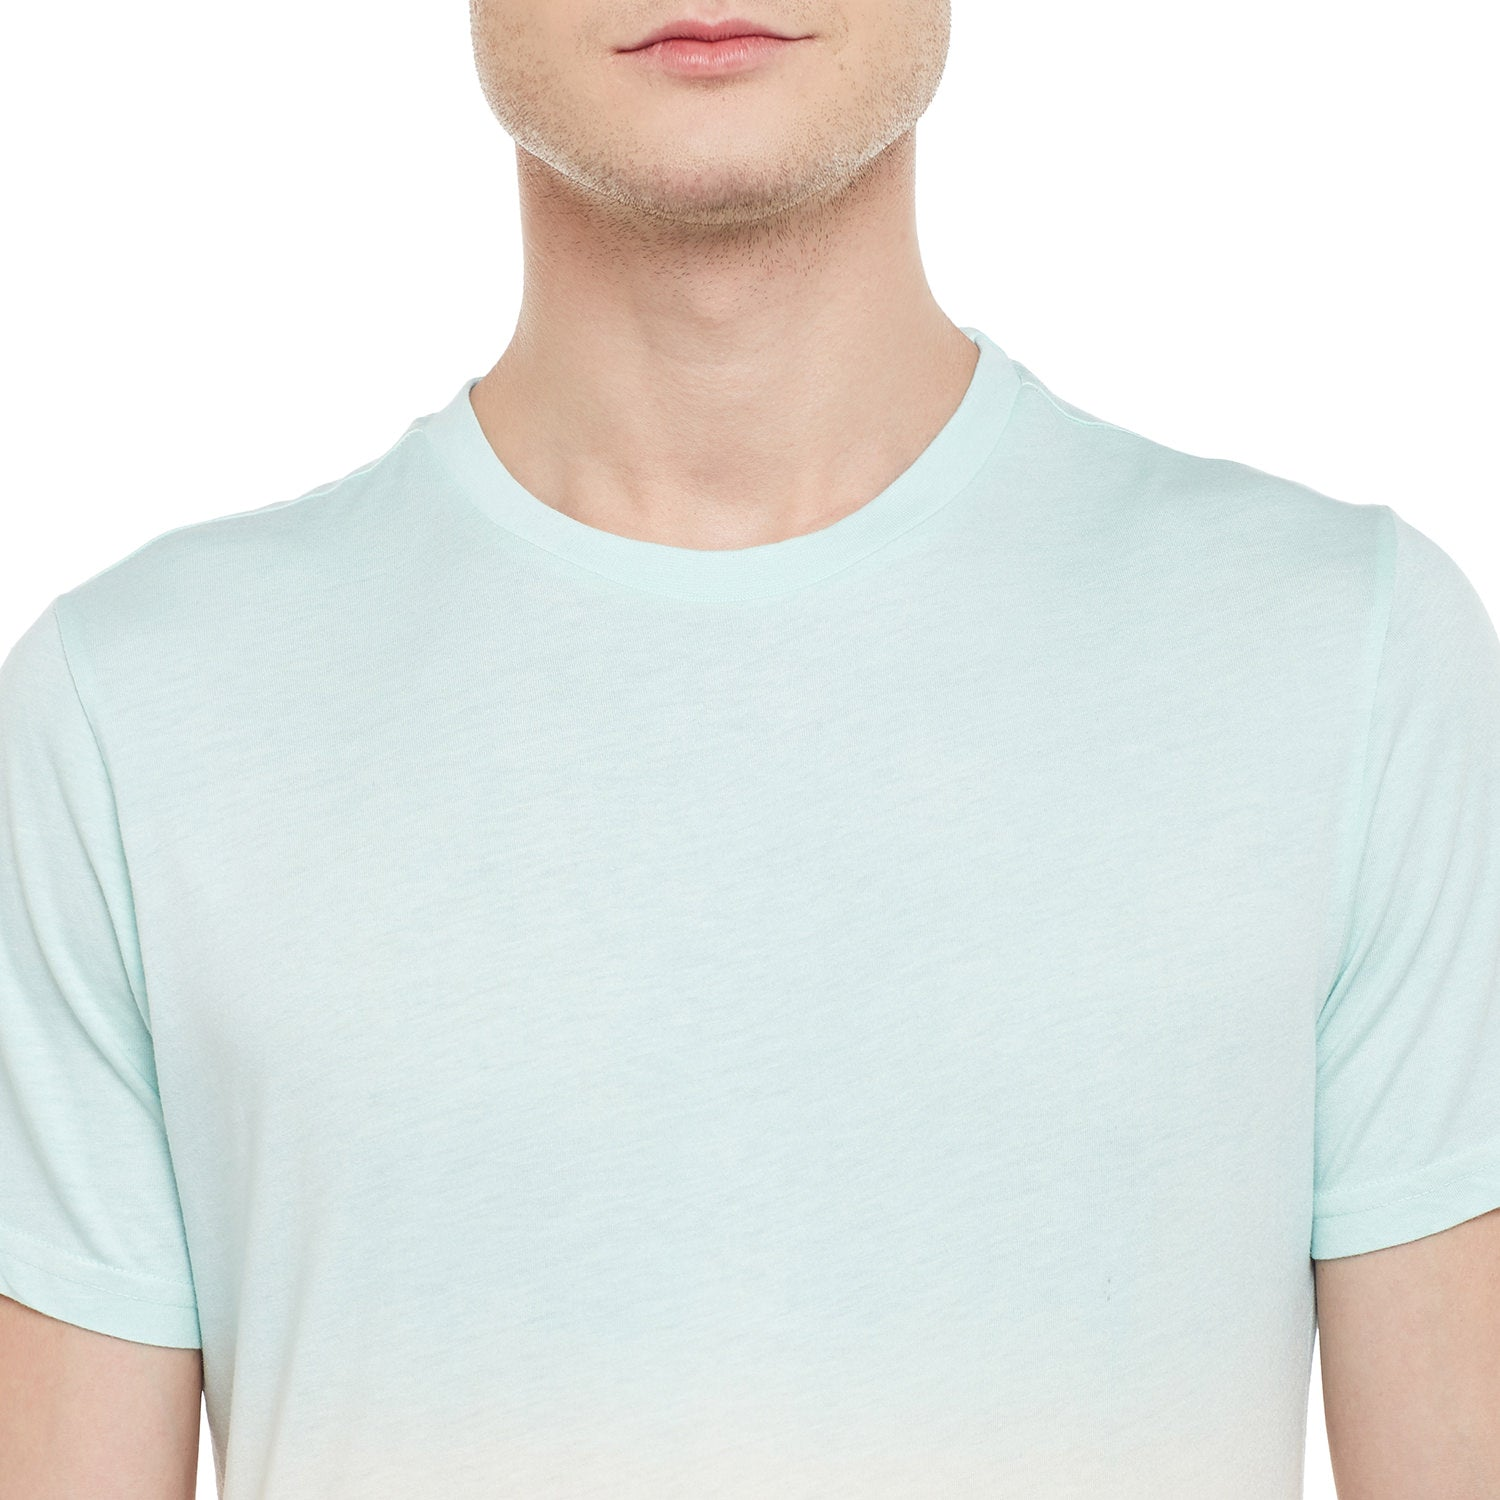 Atorse Mens Half Sleeve T-Shirt With Ombre Effect